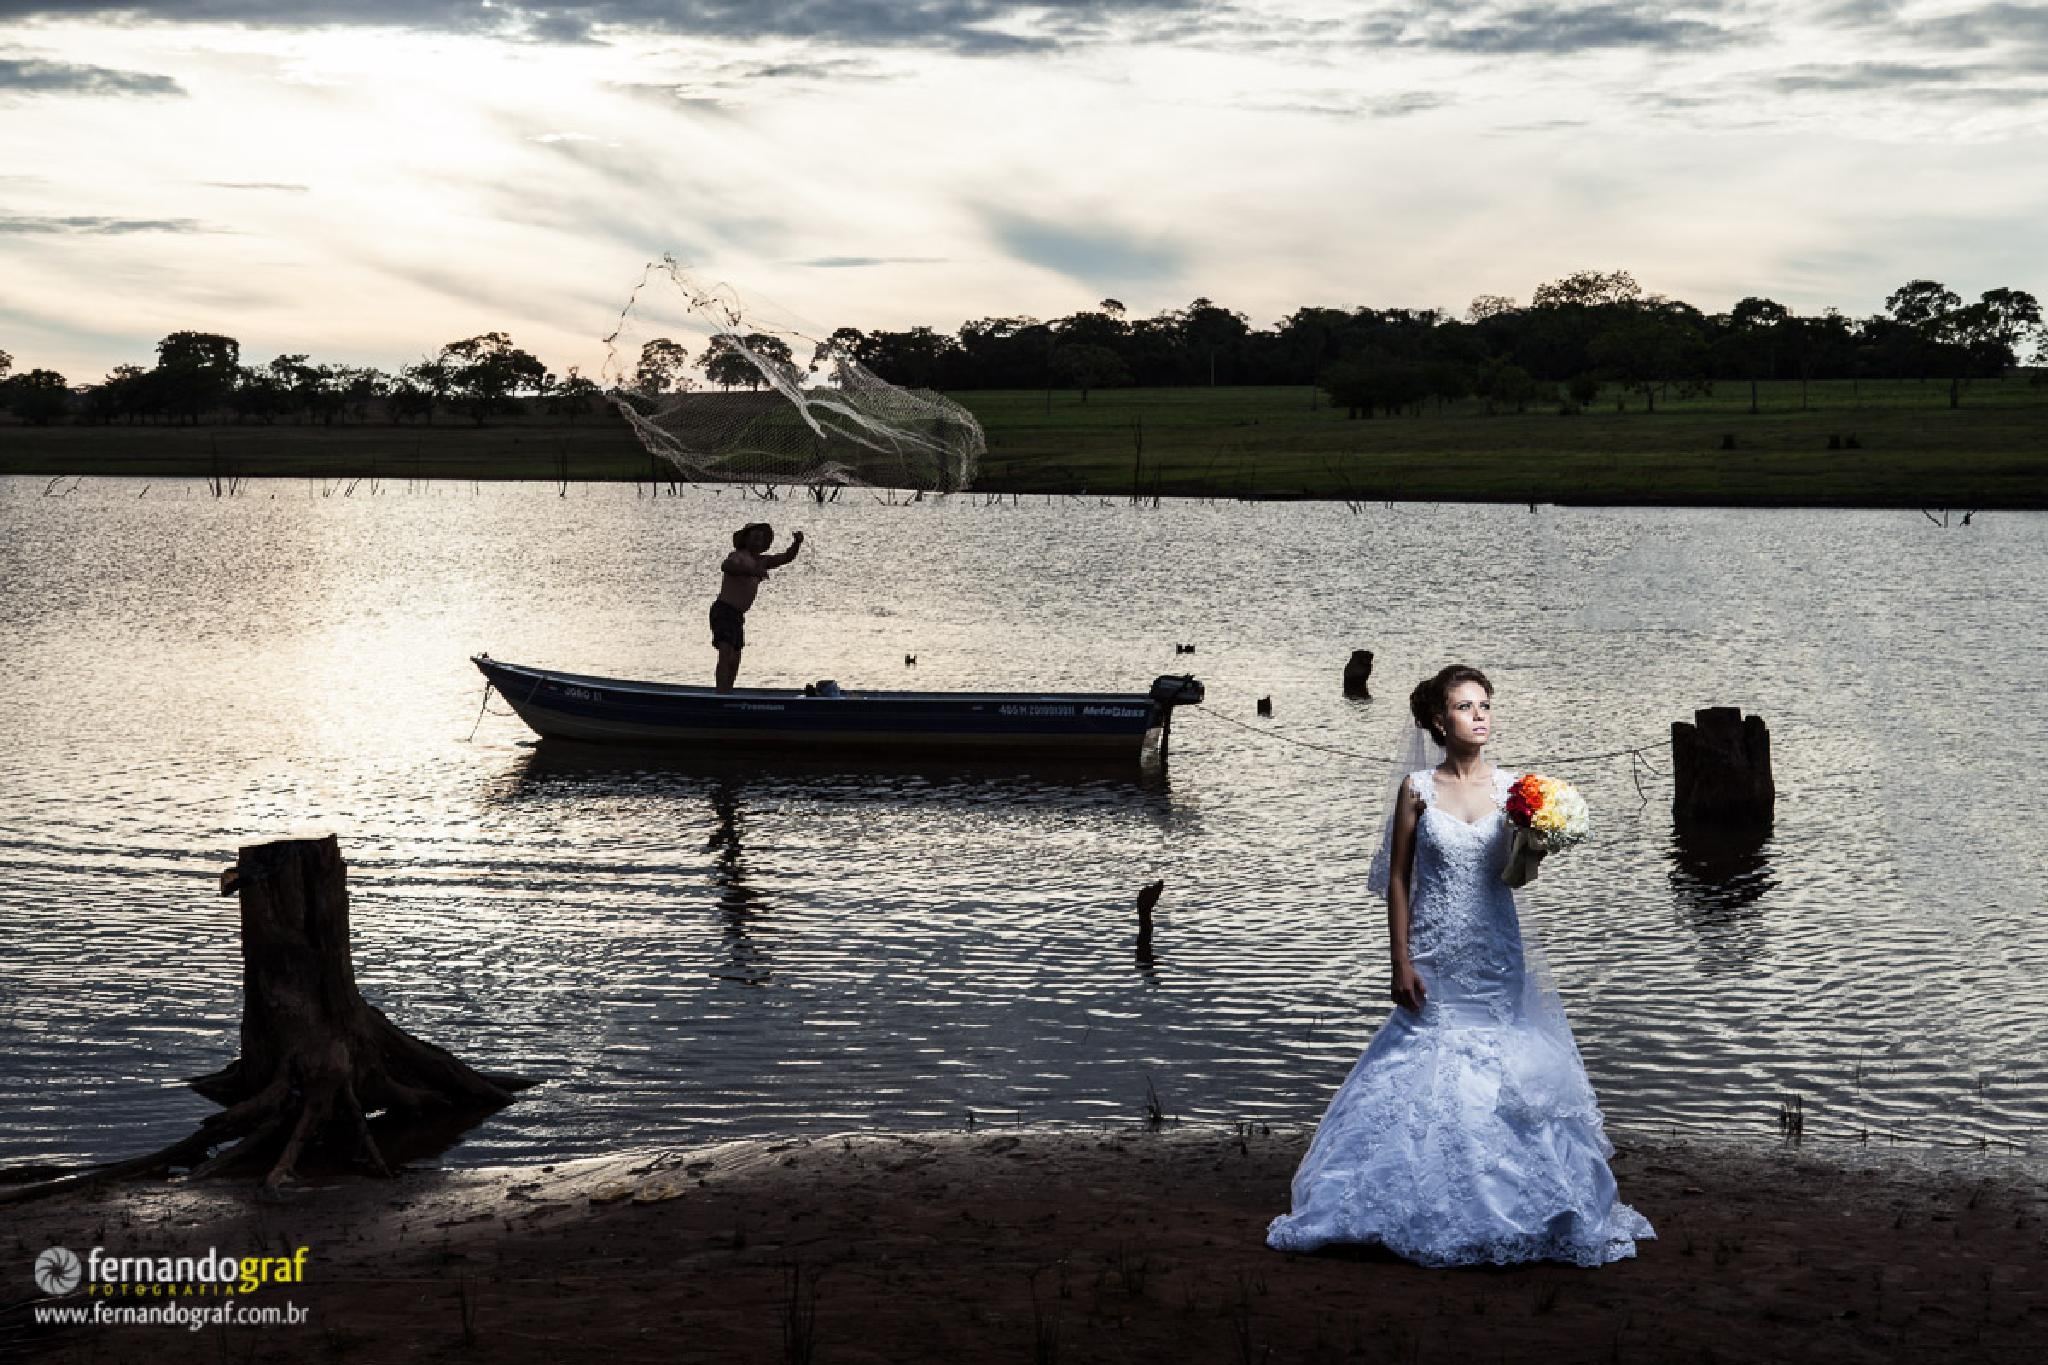 The Bride and the Fisherman by Fernando Graf